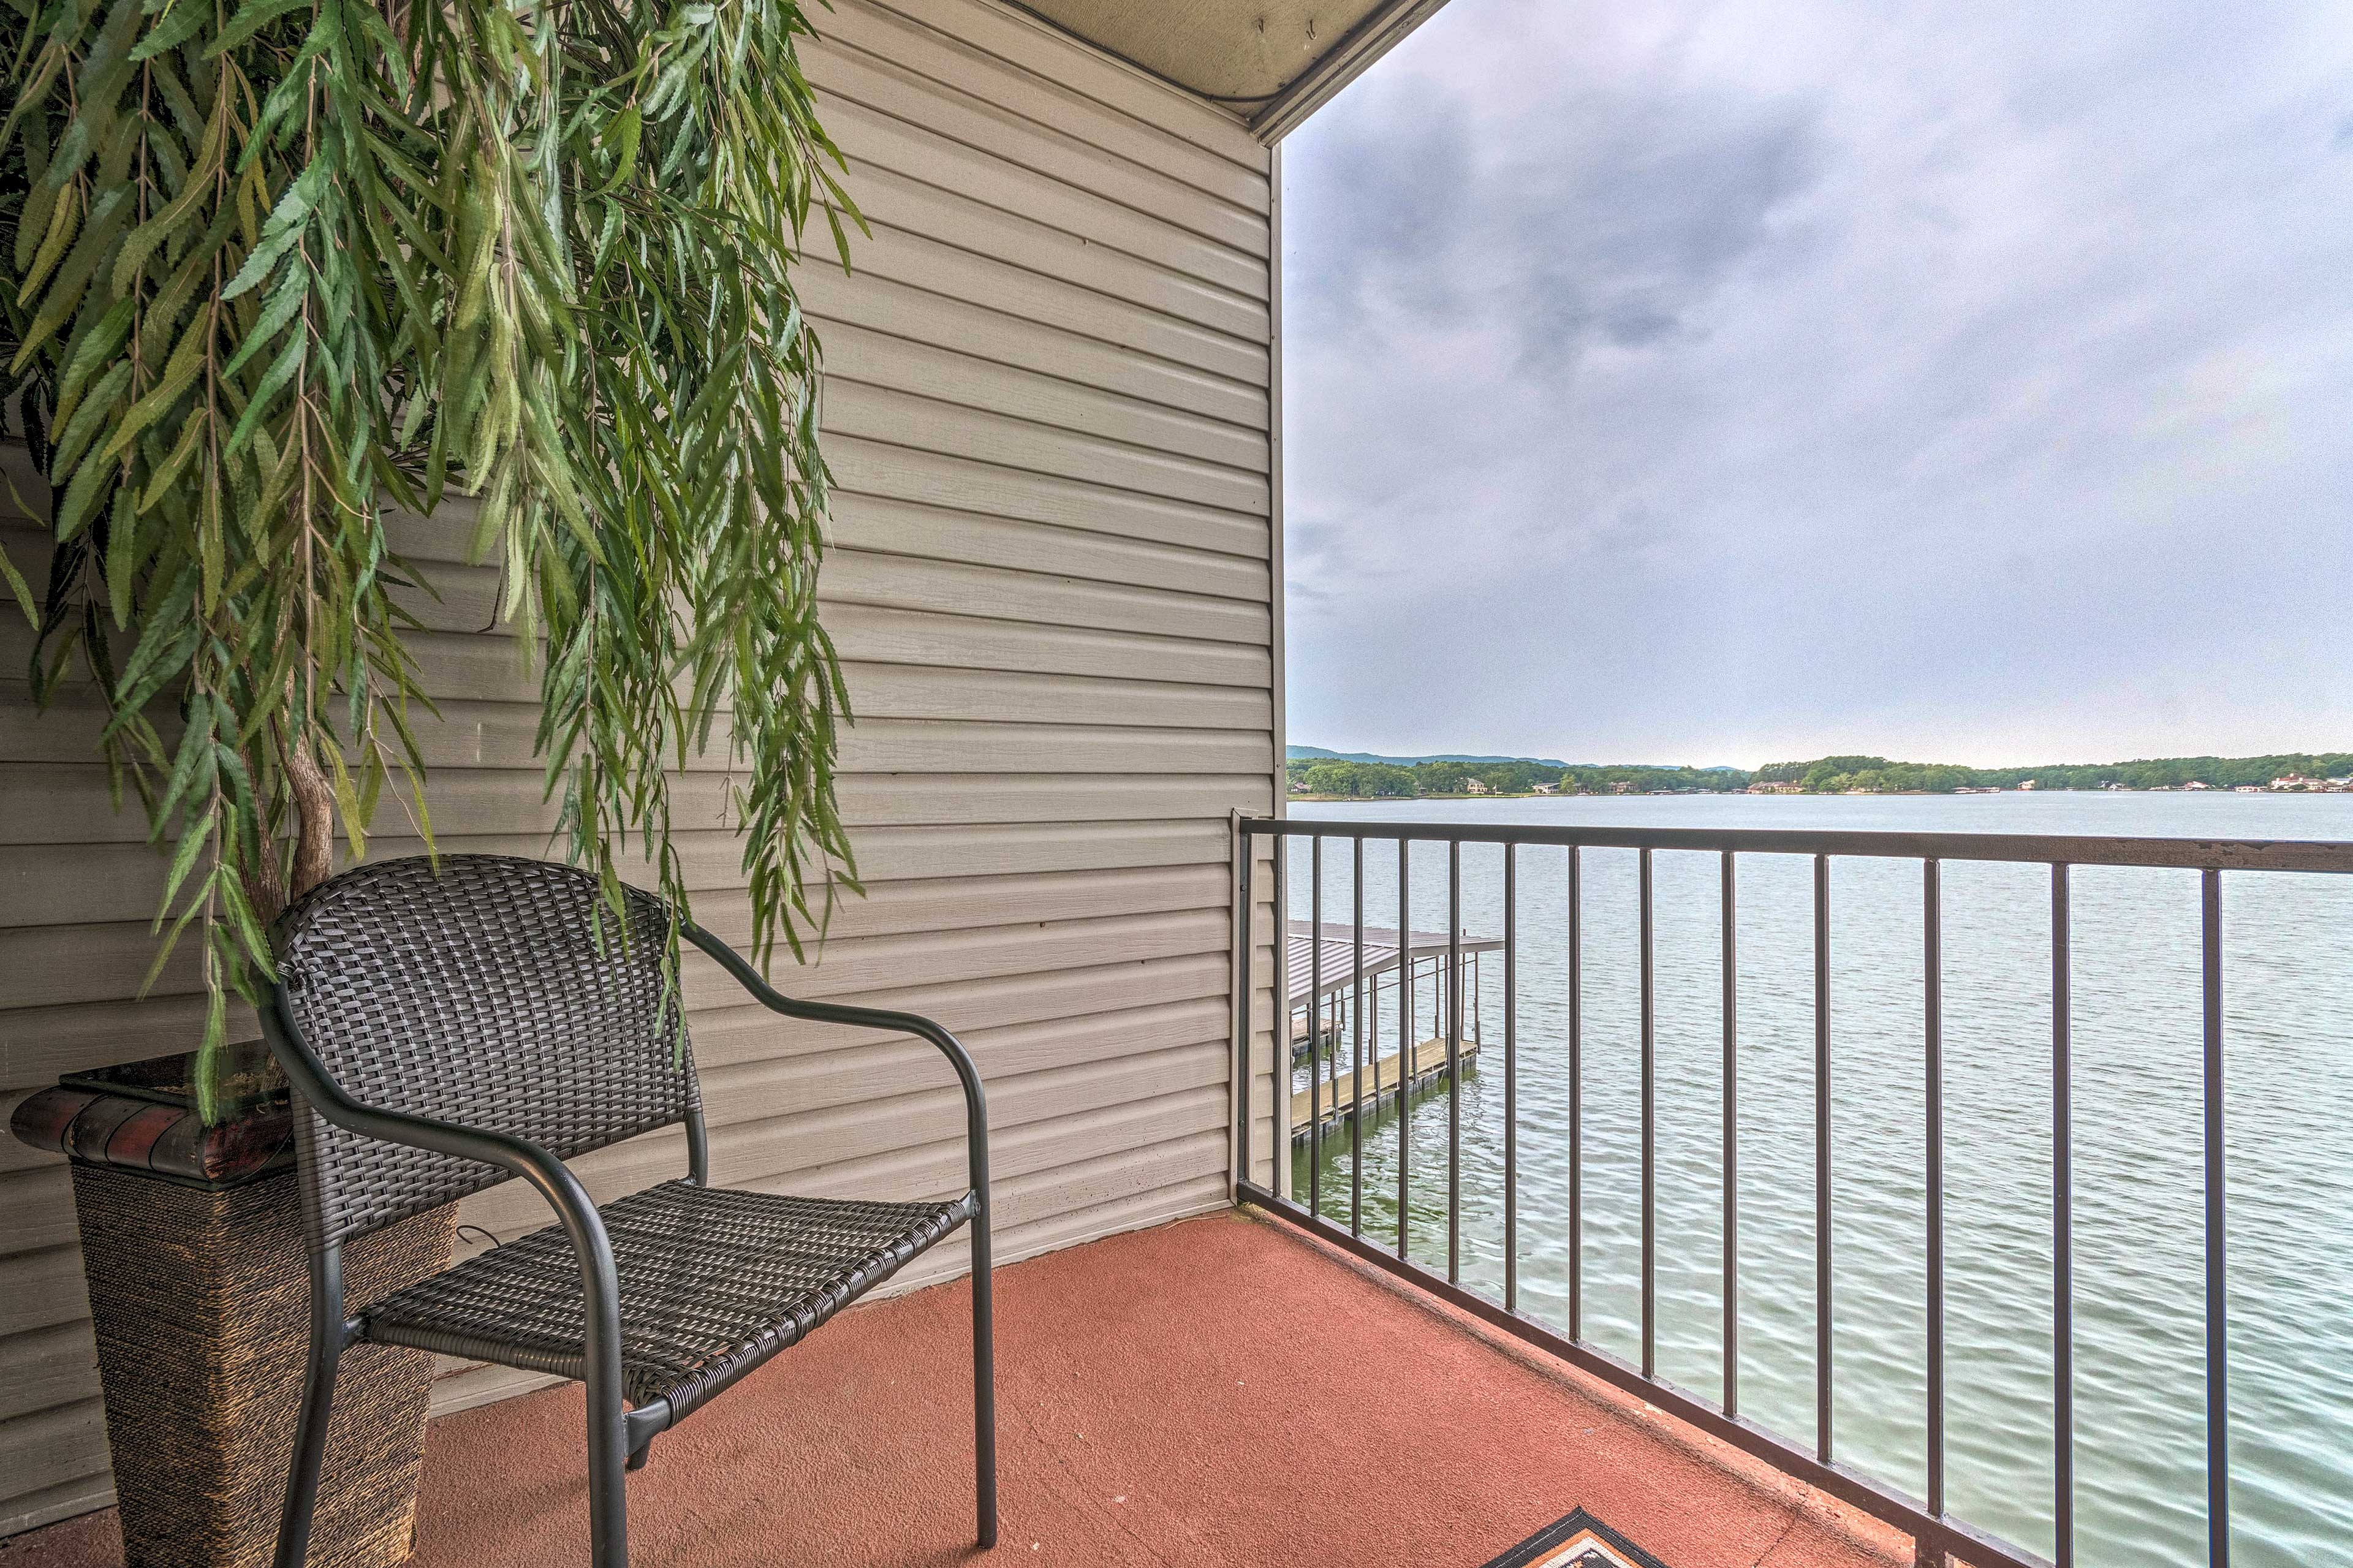 The condo is conveniently located in The Landing community.